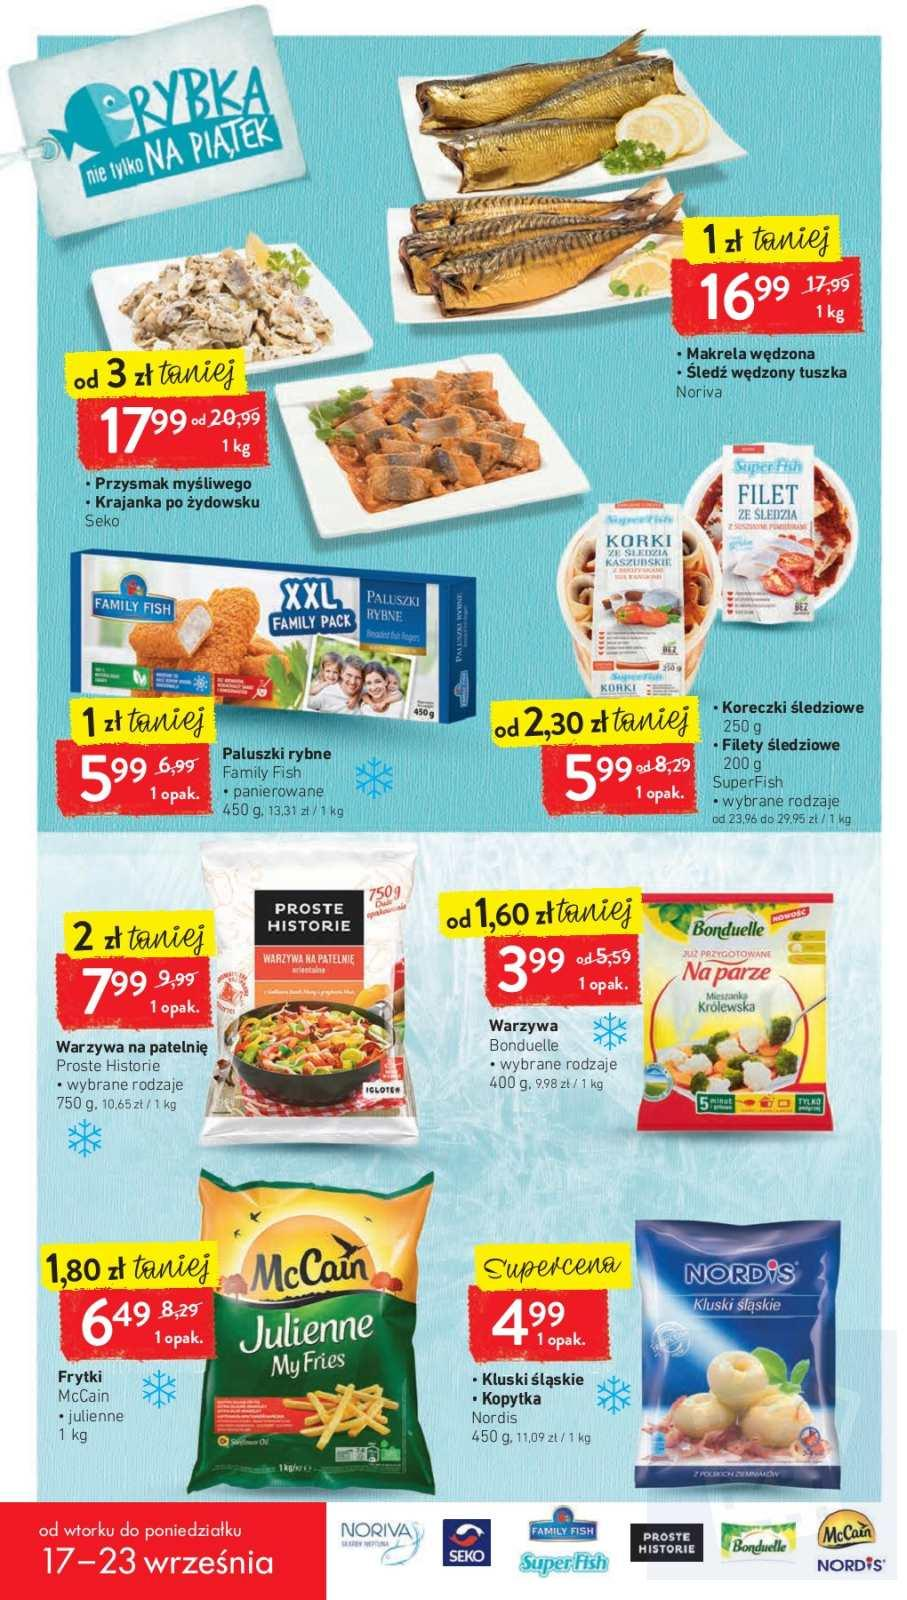 Gazetka promocyjna Intermarche do 23/09/2019 str.8